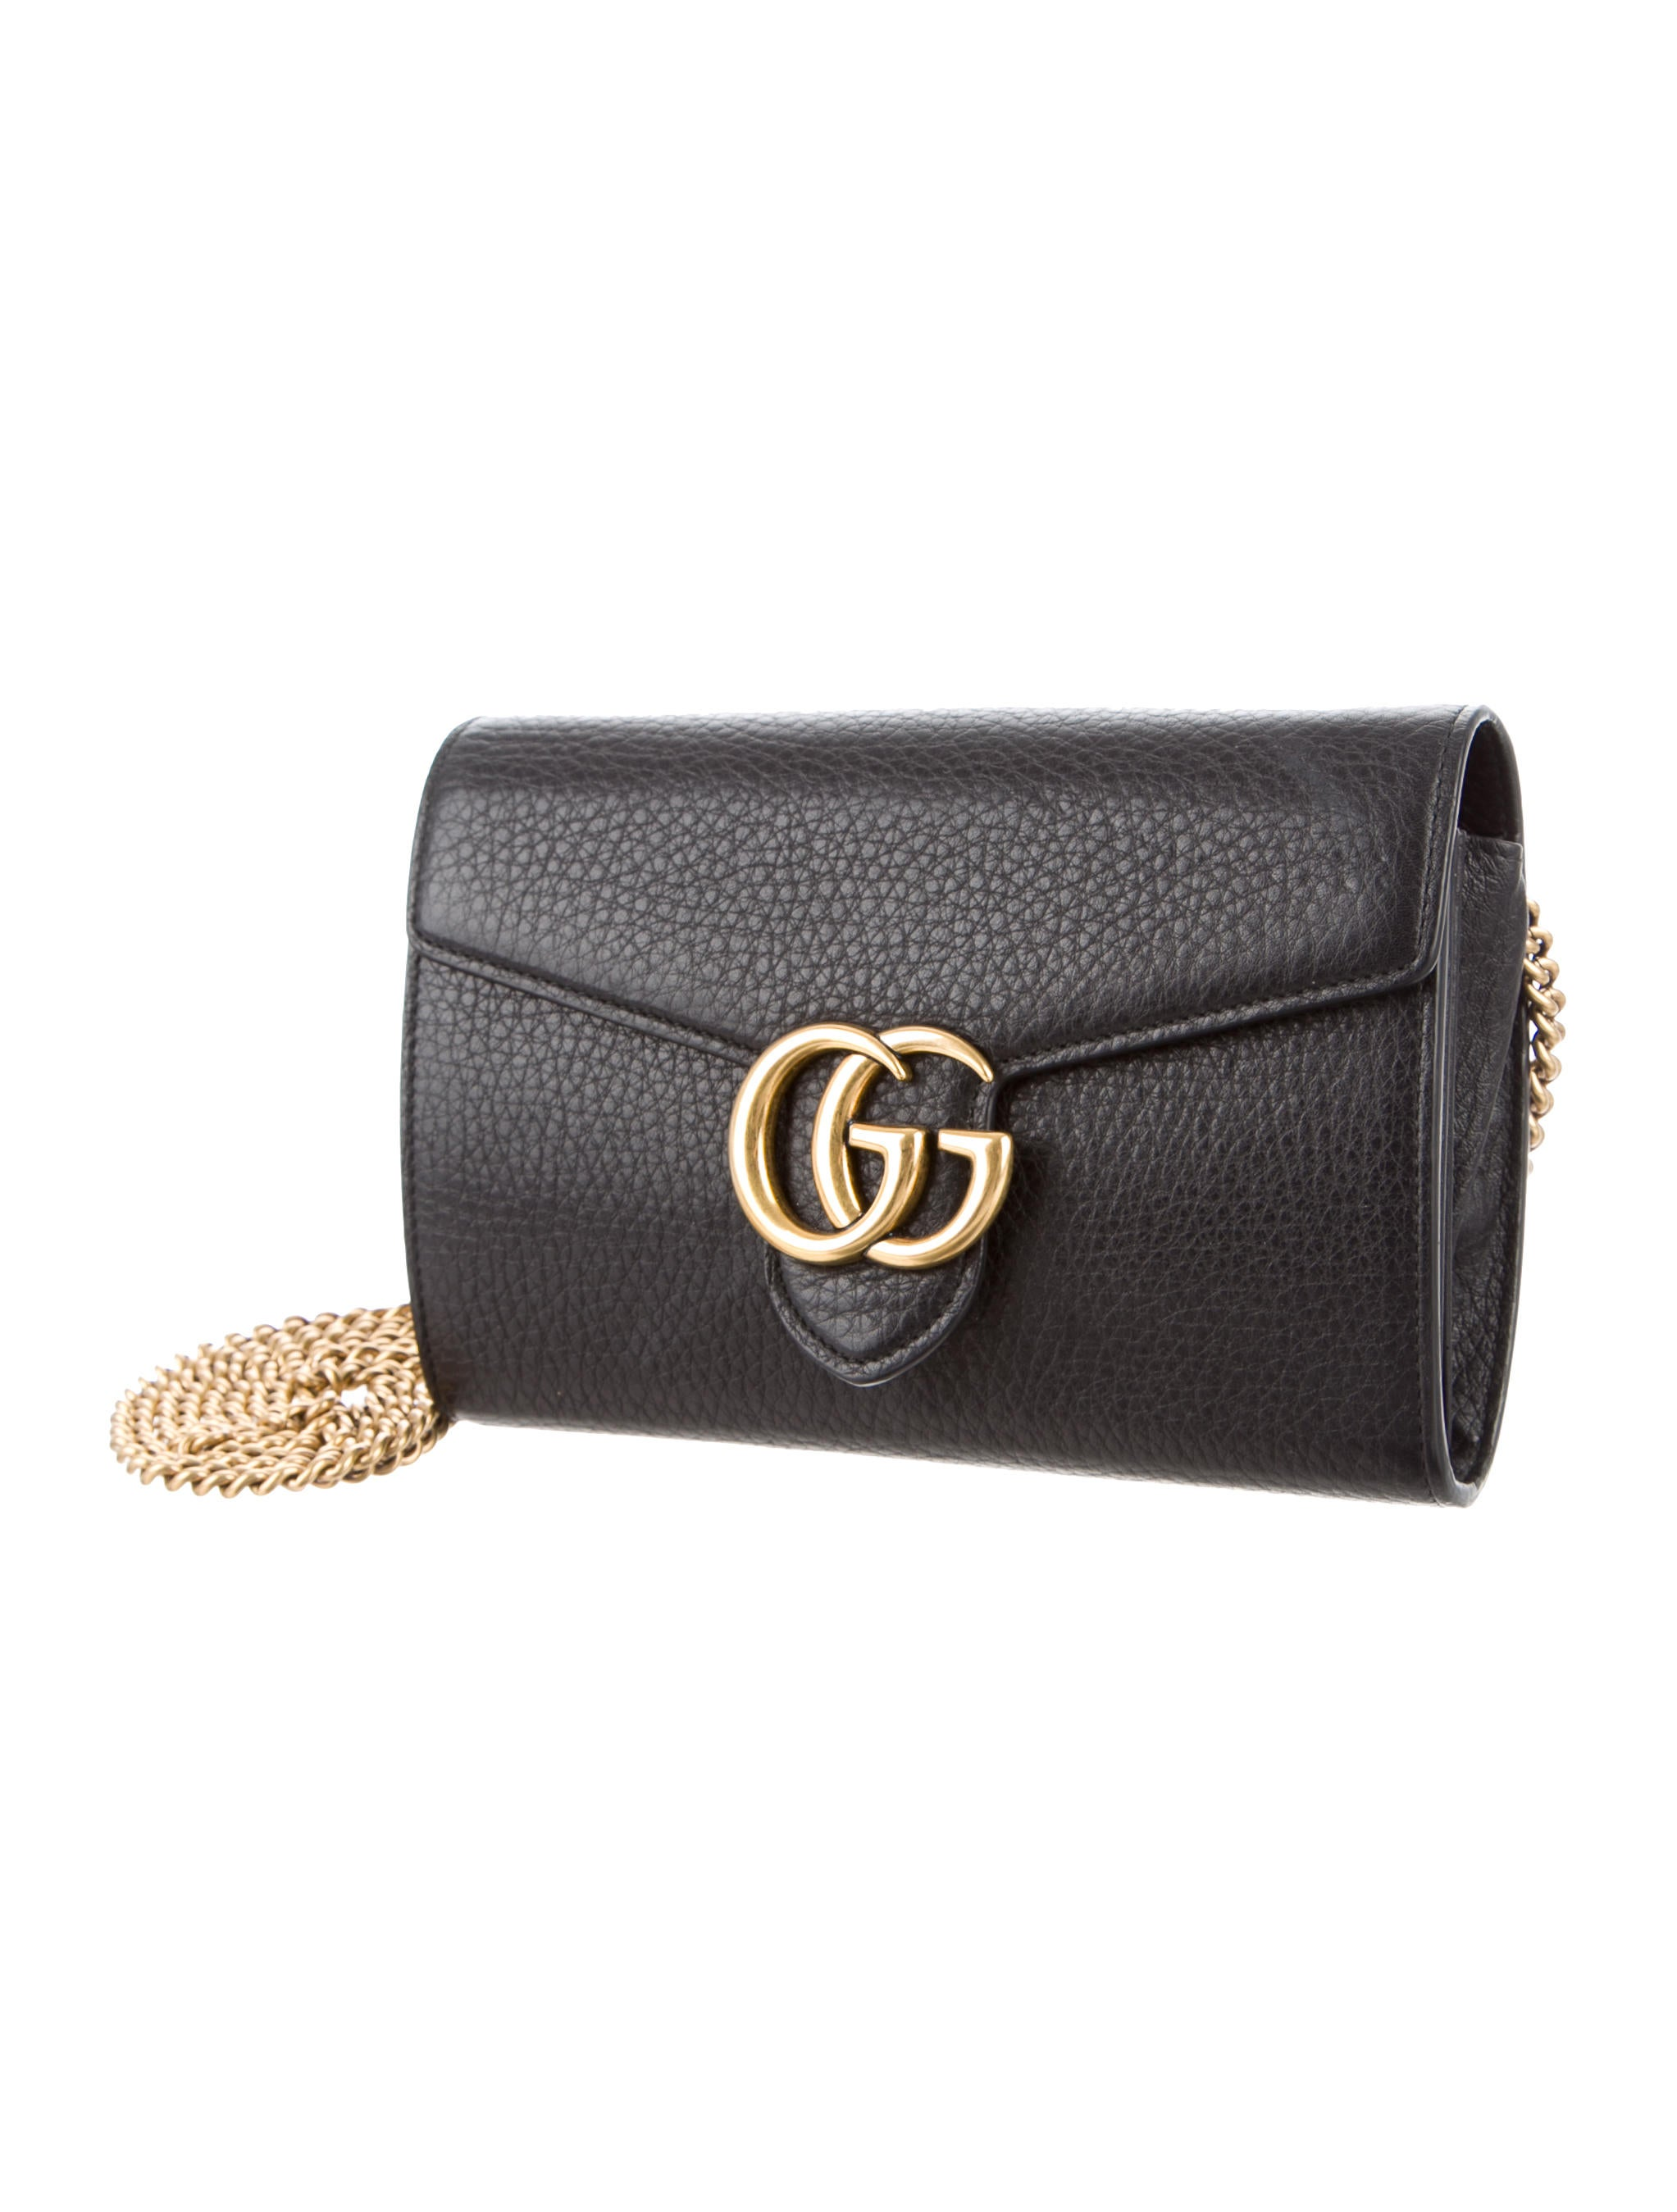 f3916ebfd0943a Replica Gucci Marmont Handbags For Women | Dr.Paul